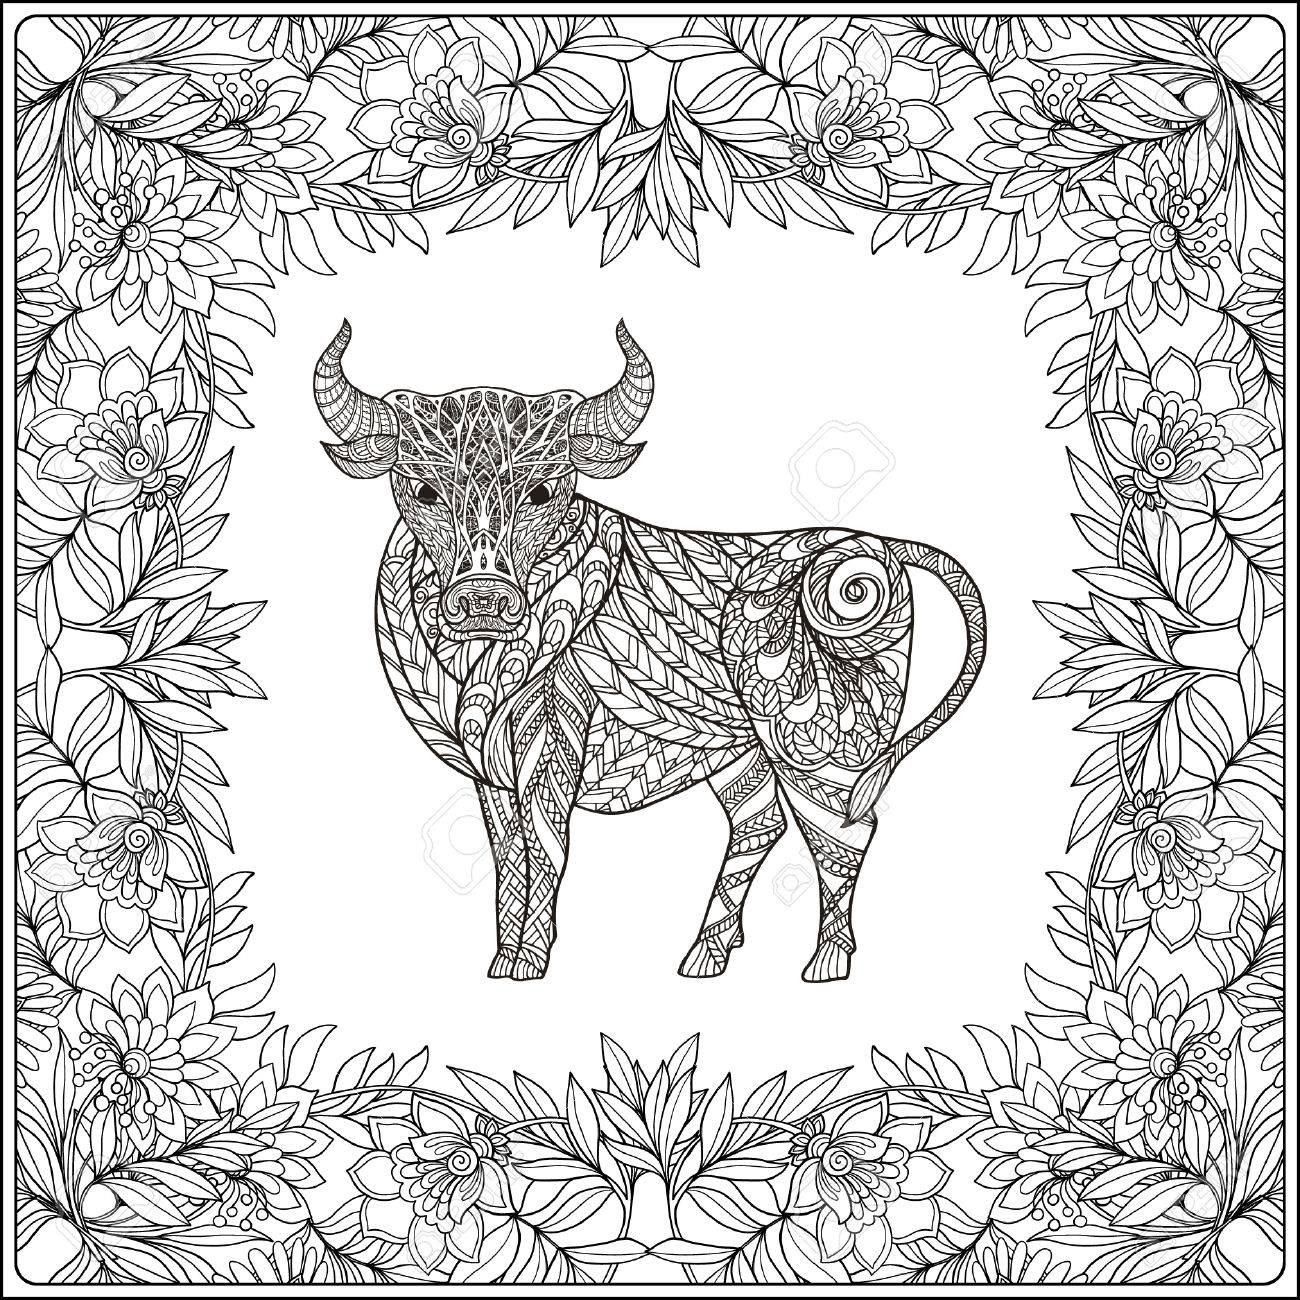 1300x1300 Cow In Floral Frame. Coloring Book For Adult And Older Children